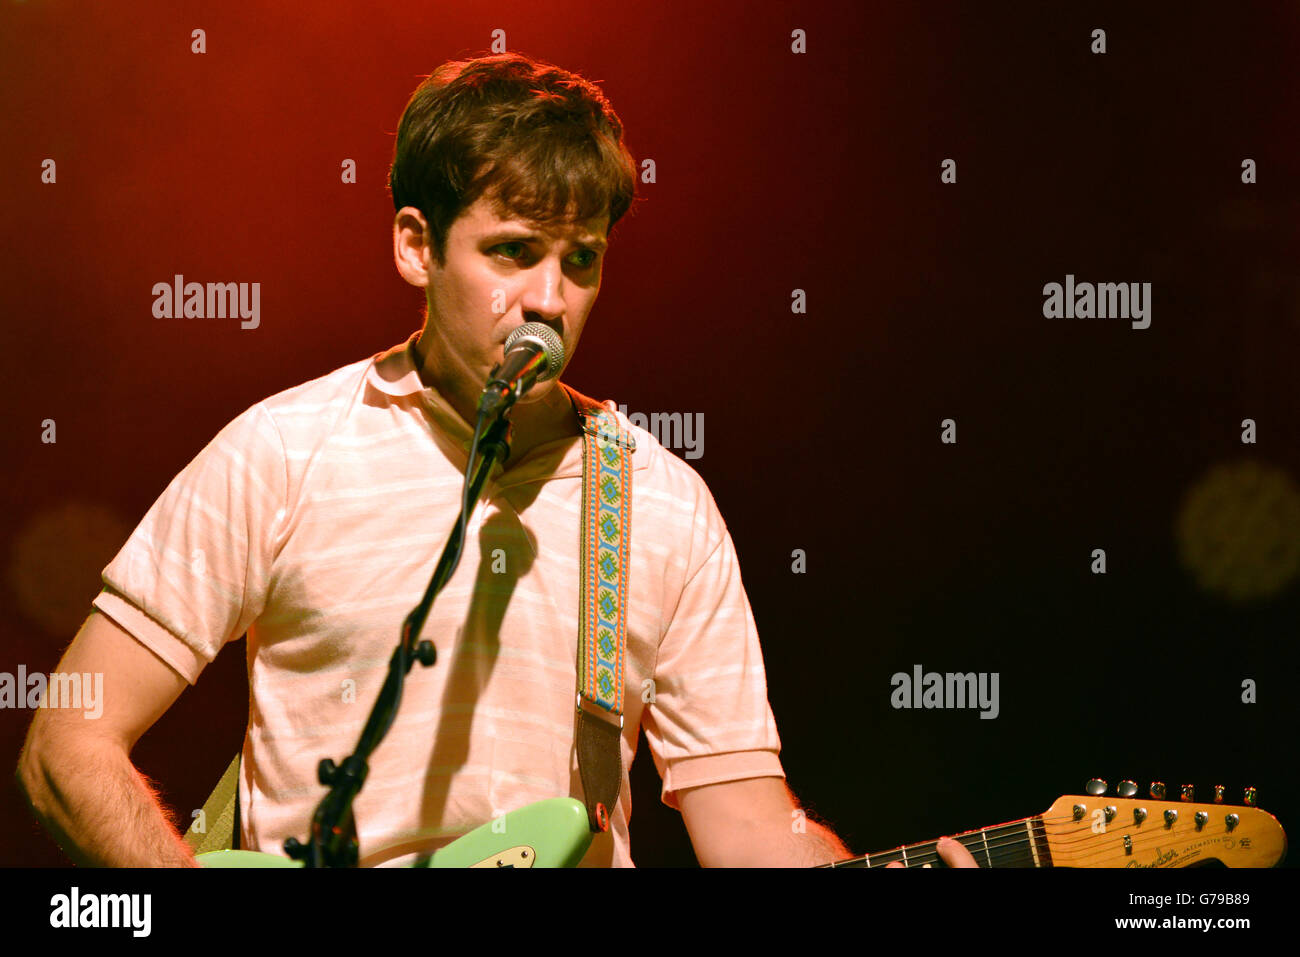 Ottawa, Canada - June 25, 2016:  Guitarist Alec O'Hanley of the indie pop band Alvvays that topped the US college Stock Photo